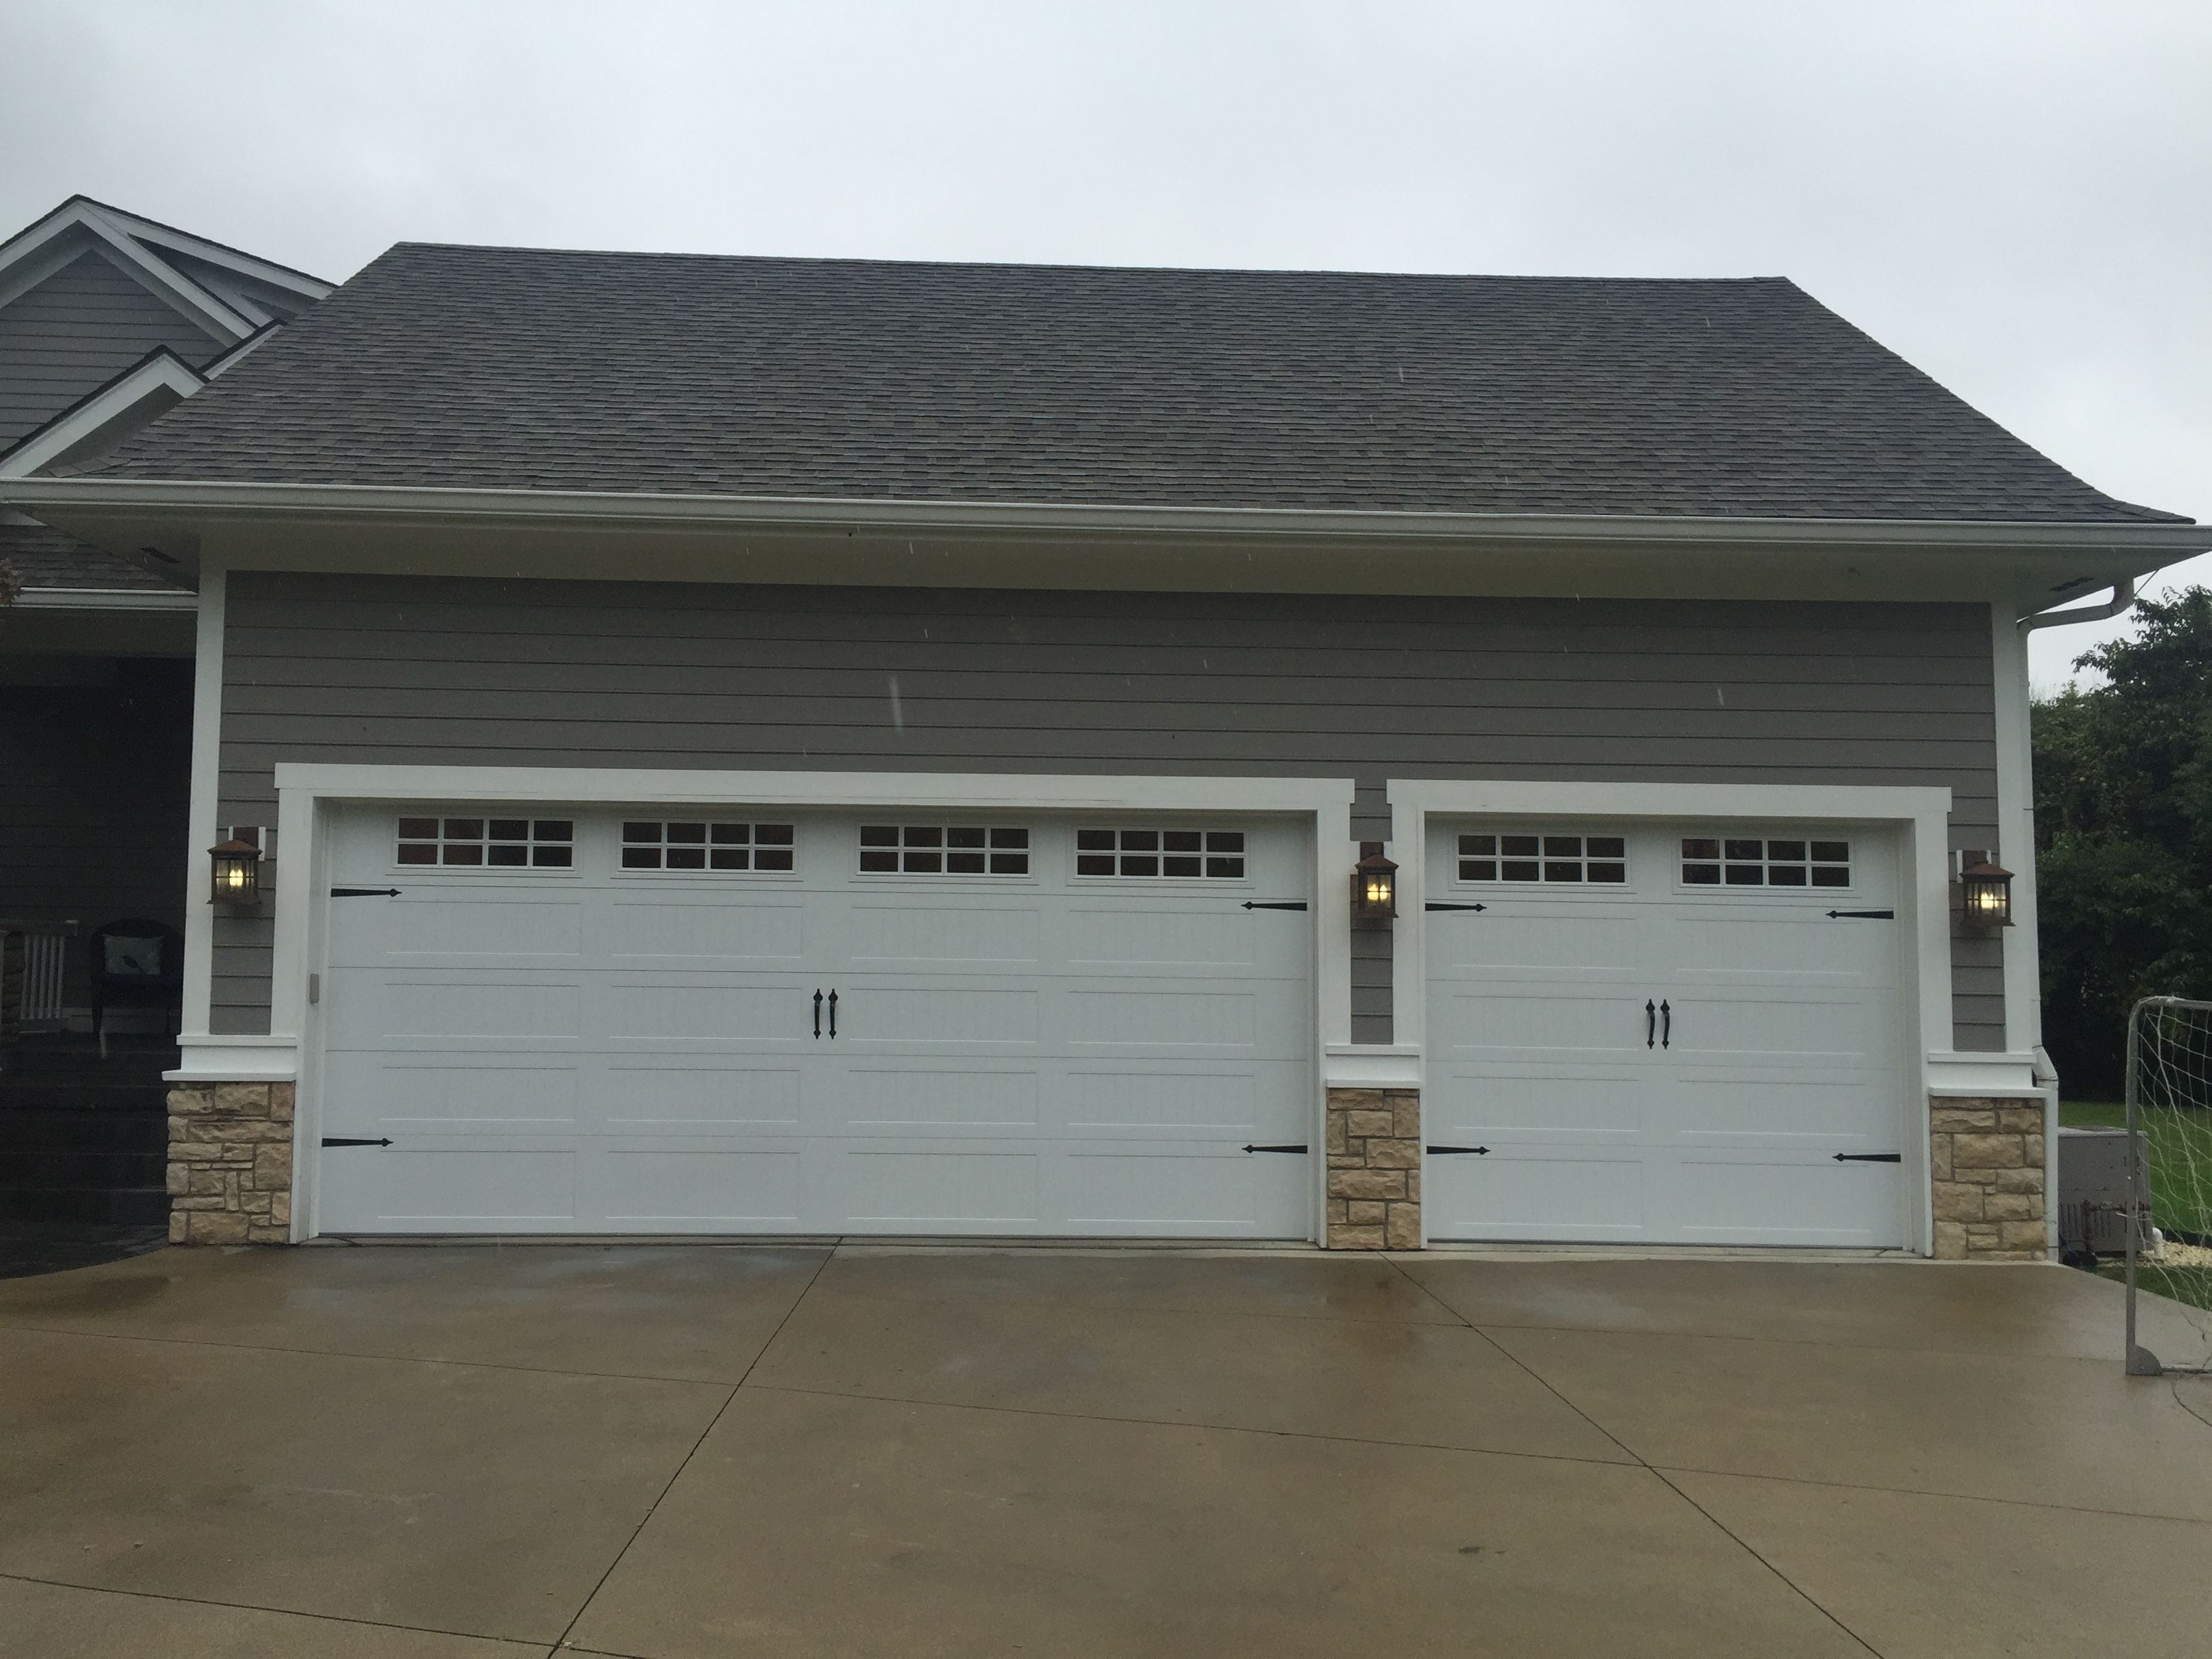 Beautiful Chi Model 5916 Stamped Carriage House Garage Doors With Insulated Windows Garage Doors Chi Garage Doors Carriage House Garage Doors